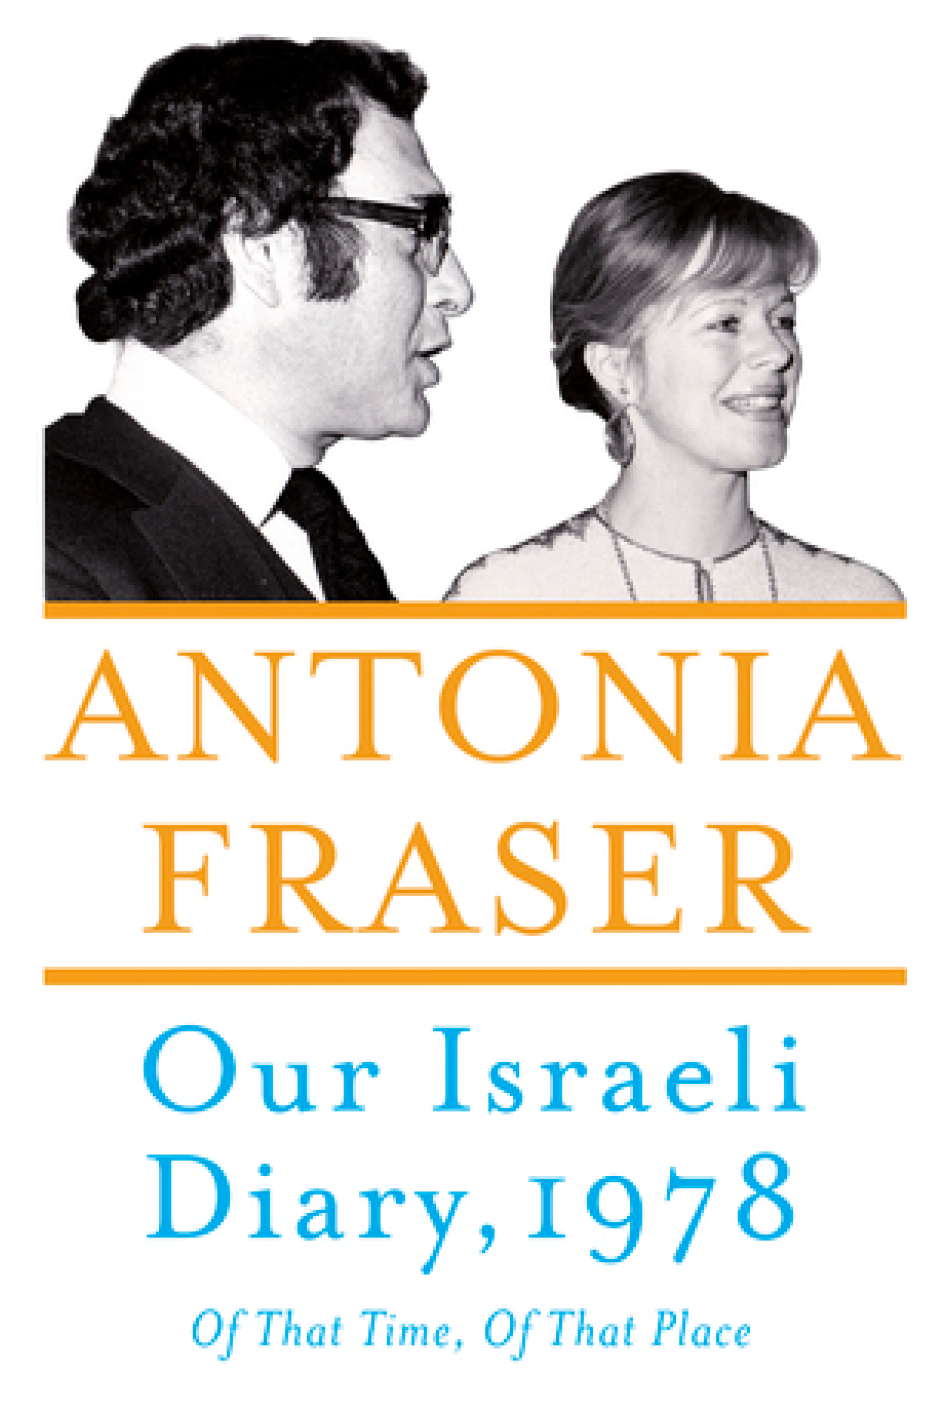 "Our Israeli Diary: Of That Time, Of That Place   ,   Antonia Fraser   "" A diary from May 1978 Harold Pinter and Lady Antonia Fraser when they visited Israel at the time of the 30th Anniversary of Independence. Based in Jerusalem, they toured many of the country's historic sites: from Bethlehem to the fortress of Masada, encountering future Prime Minister Shimon Peres, Mayor of Jerusalem Teddy Kollek, Jackie Kennedy and a long-lost cousin of Harold's on a kibbutz .""   Brendan Bruce,  Marketing and Communications Director"